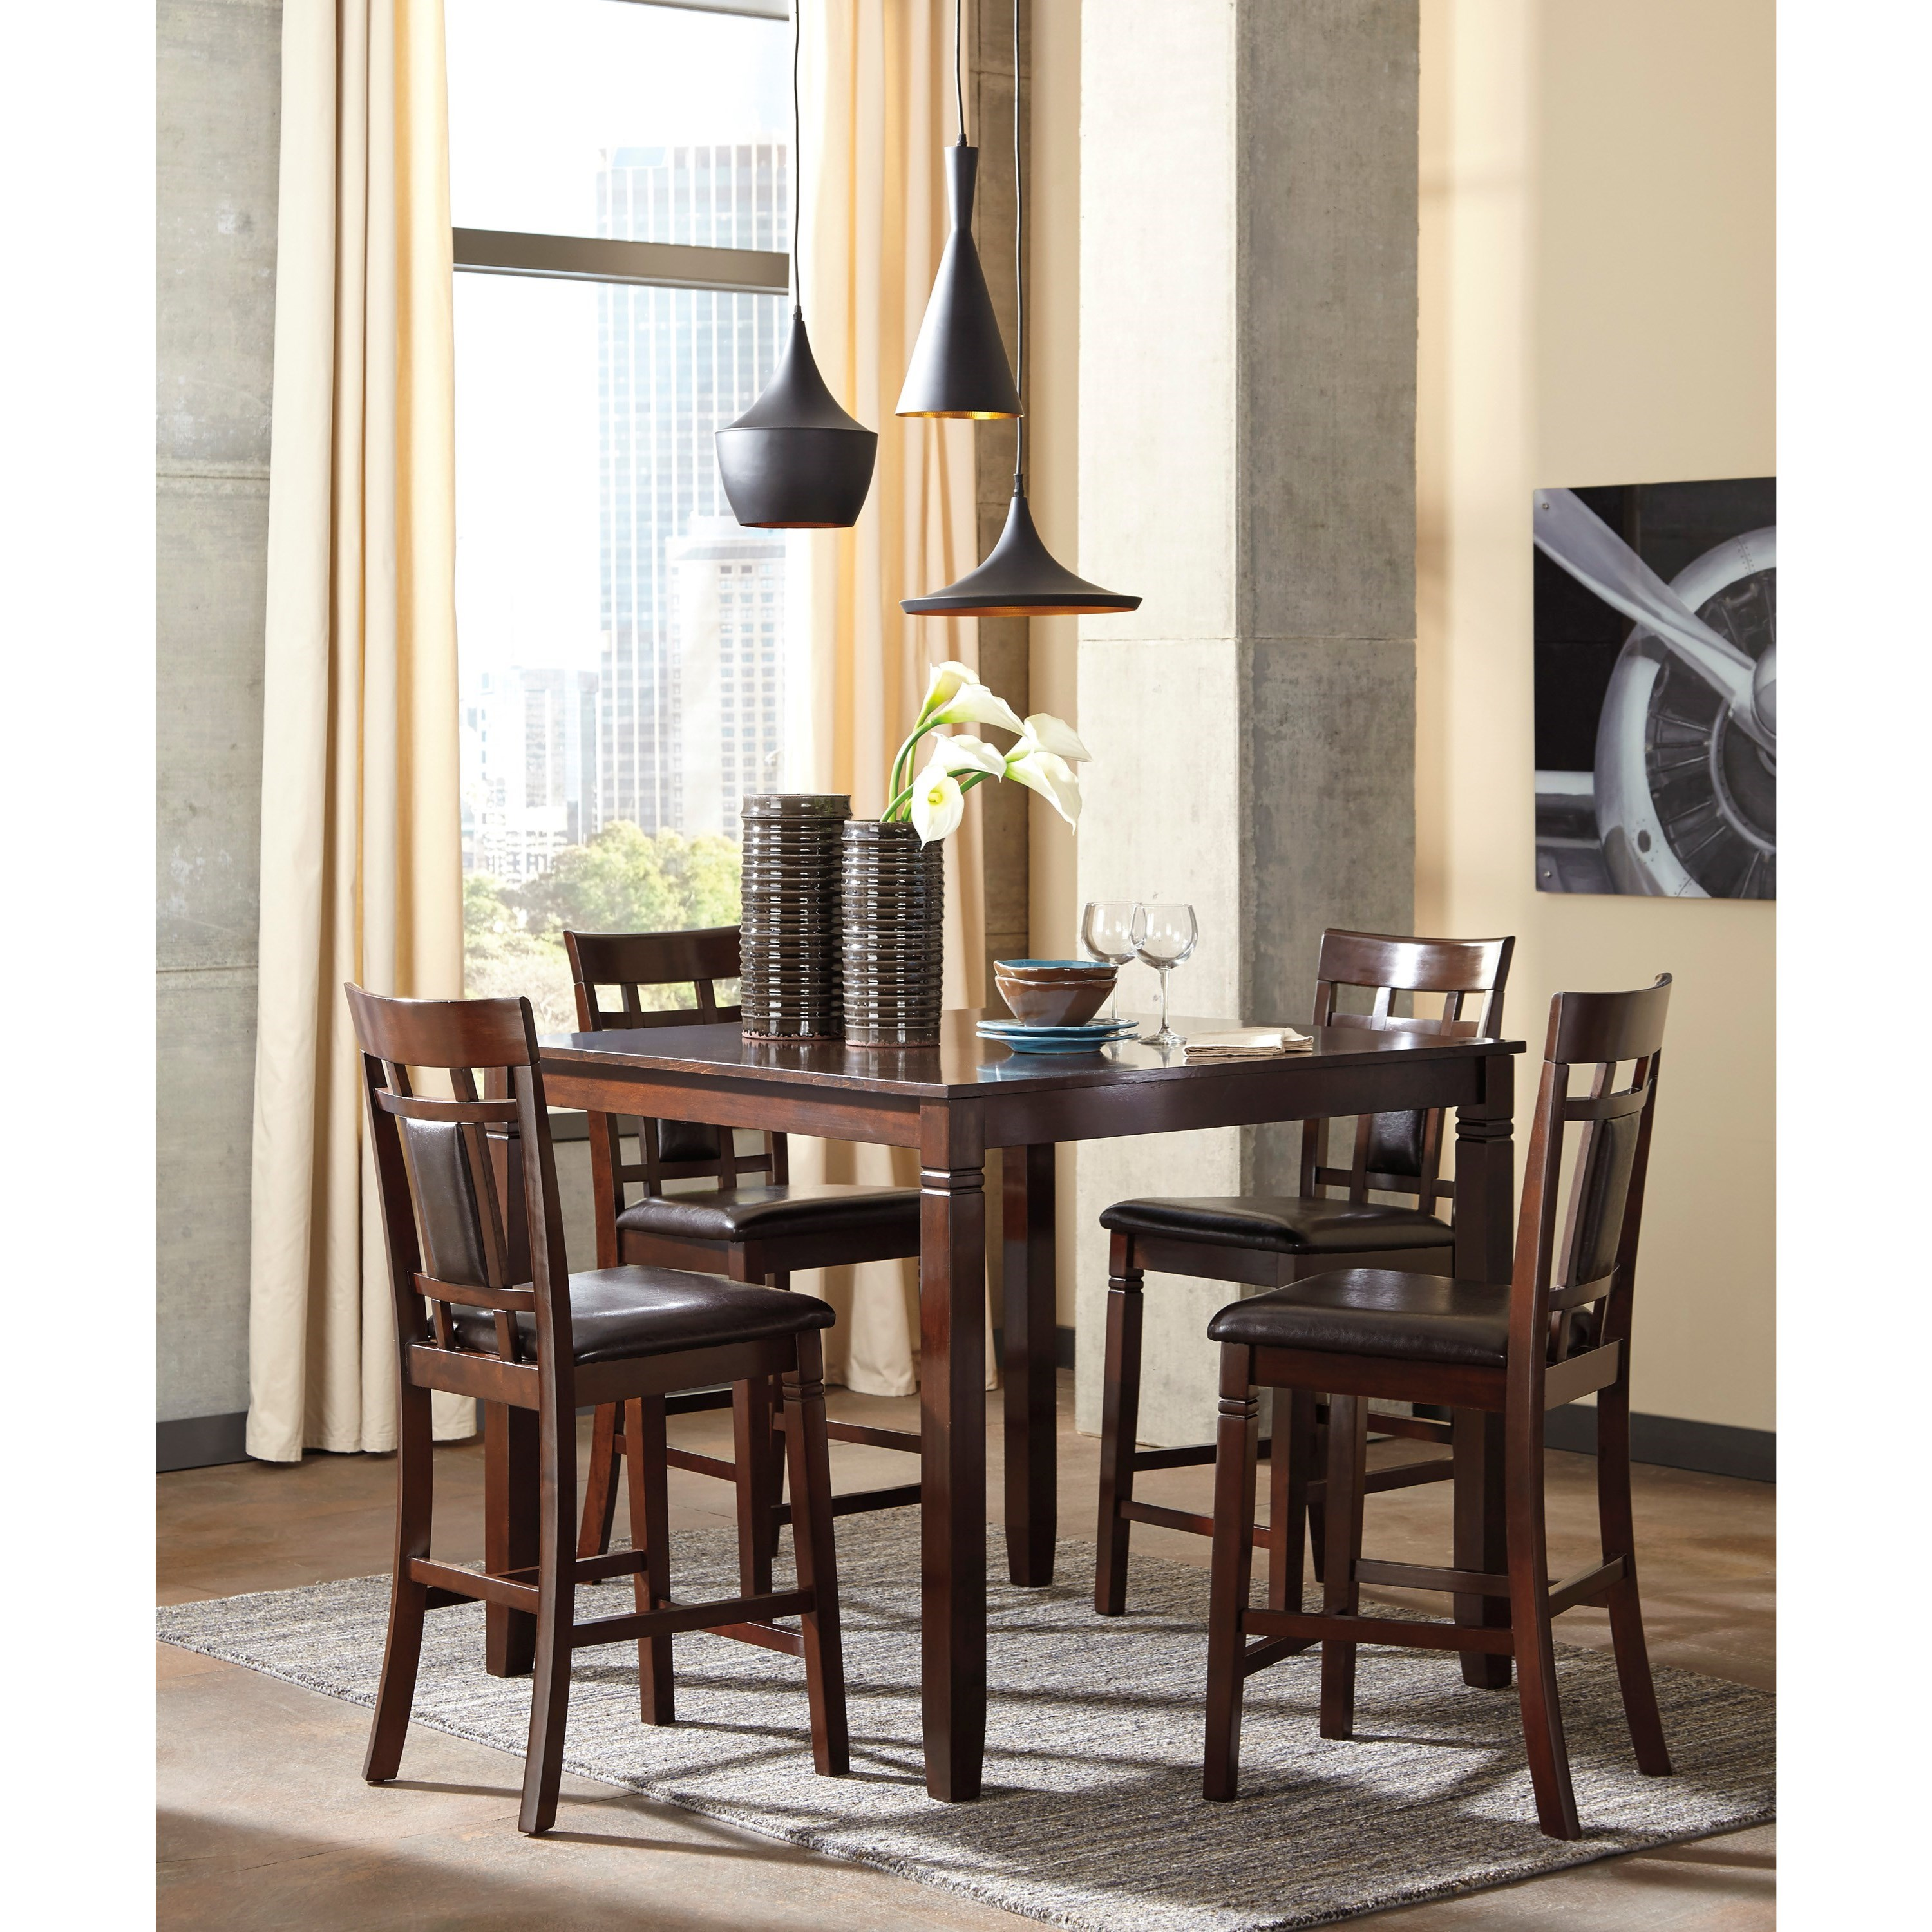 Hours Ashley Furniture: Signature Design By Ashley Bennox D384-223 Contemporary 5